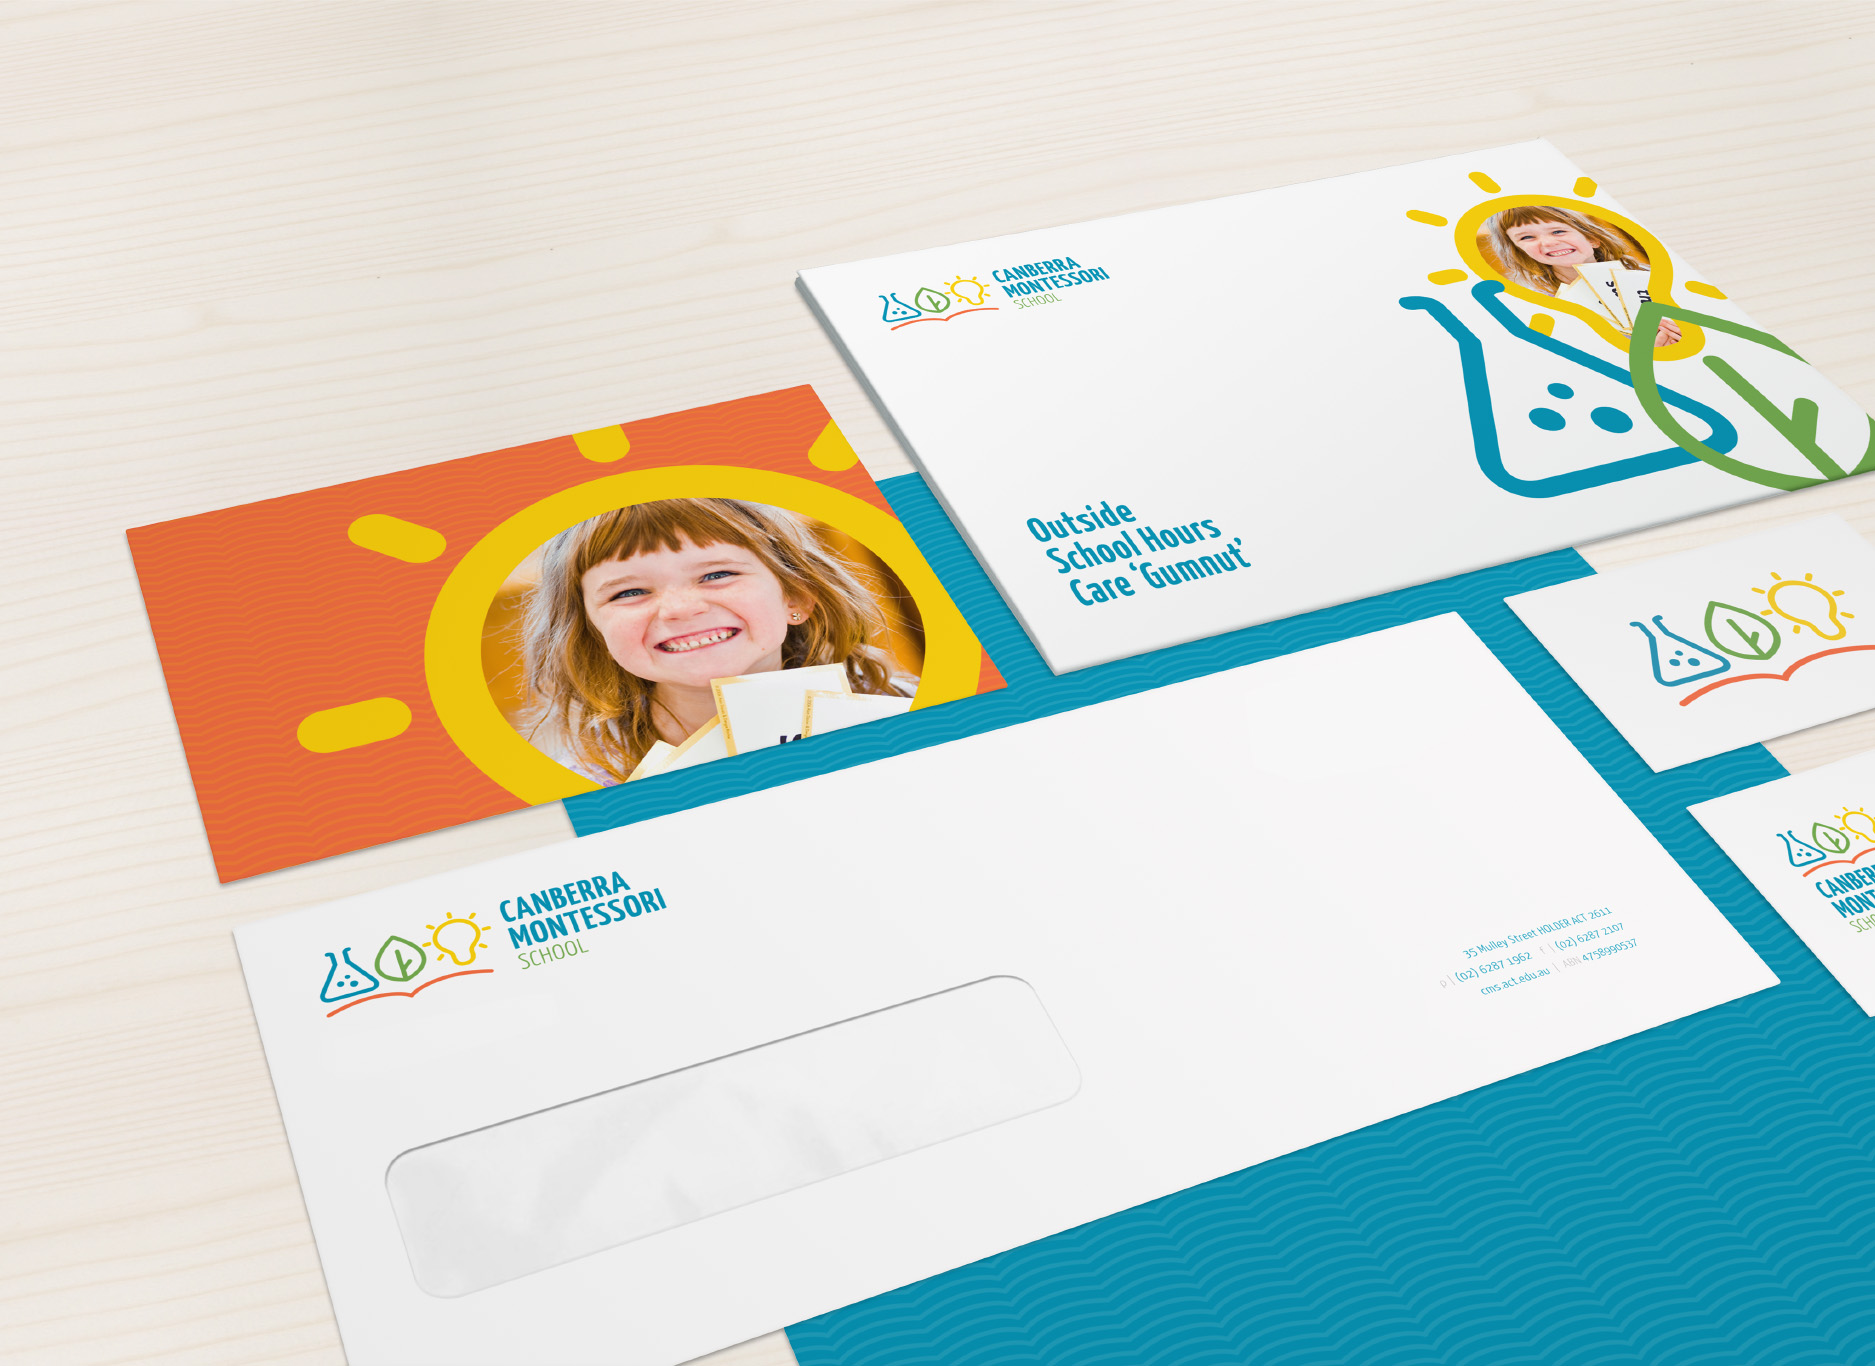 Image of a stationery set with envelope and business cards for Canberra Montessori school